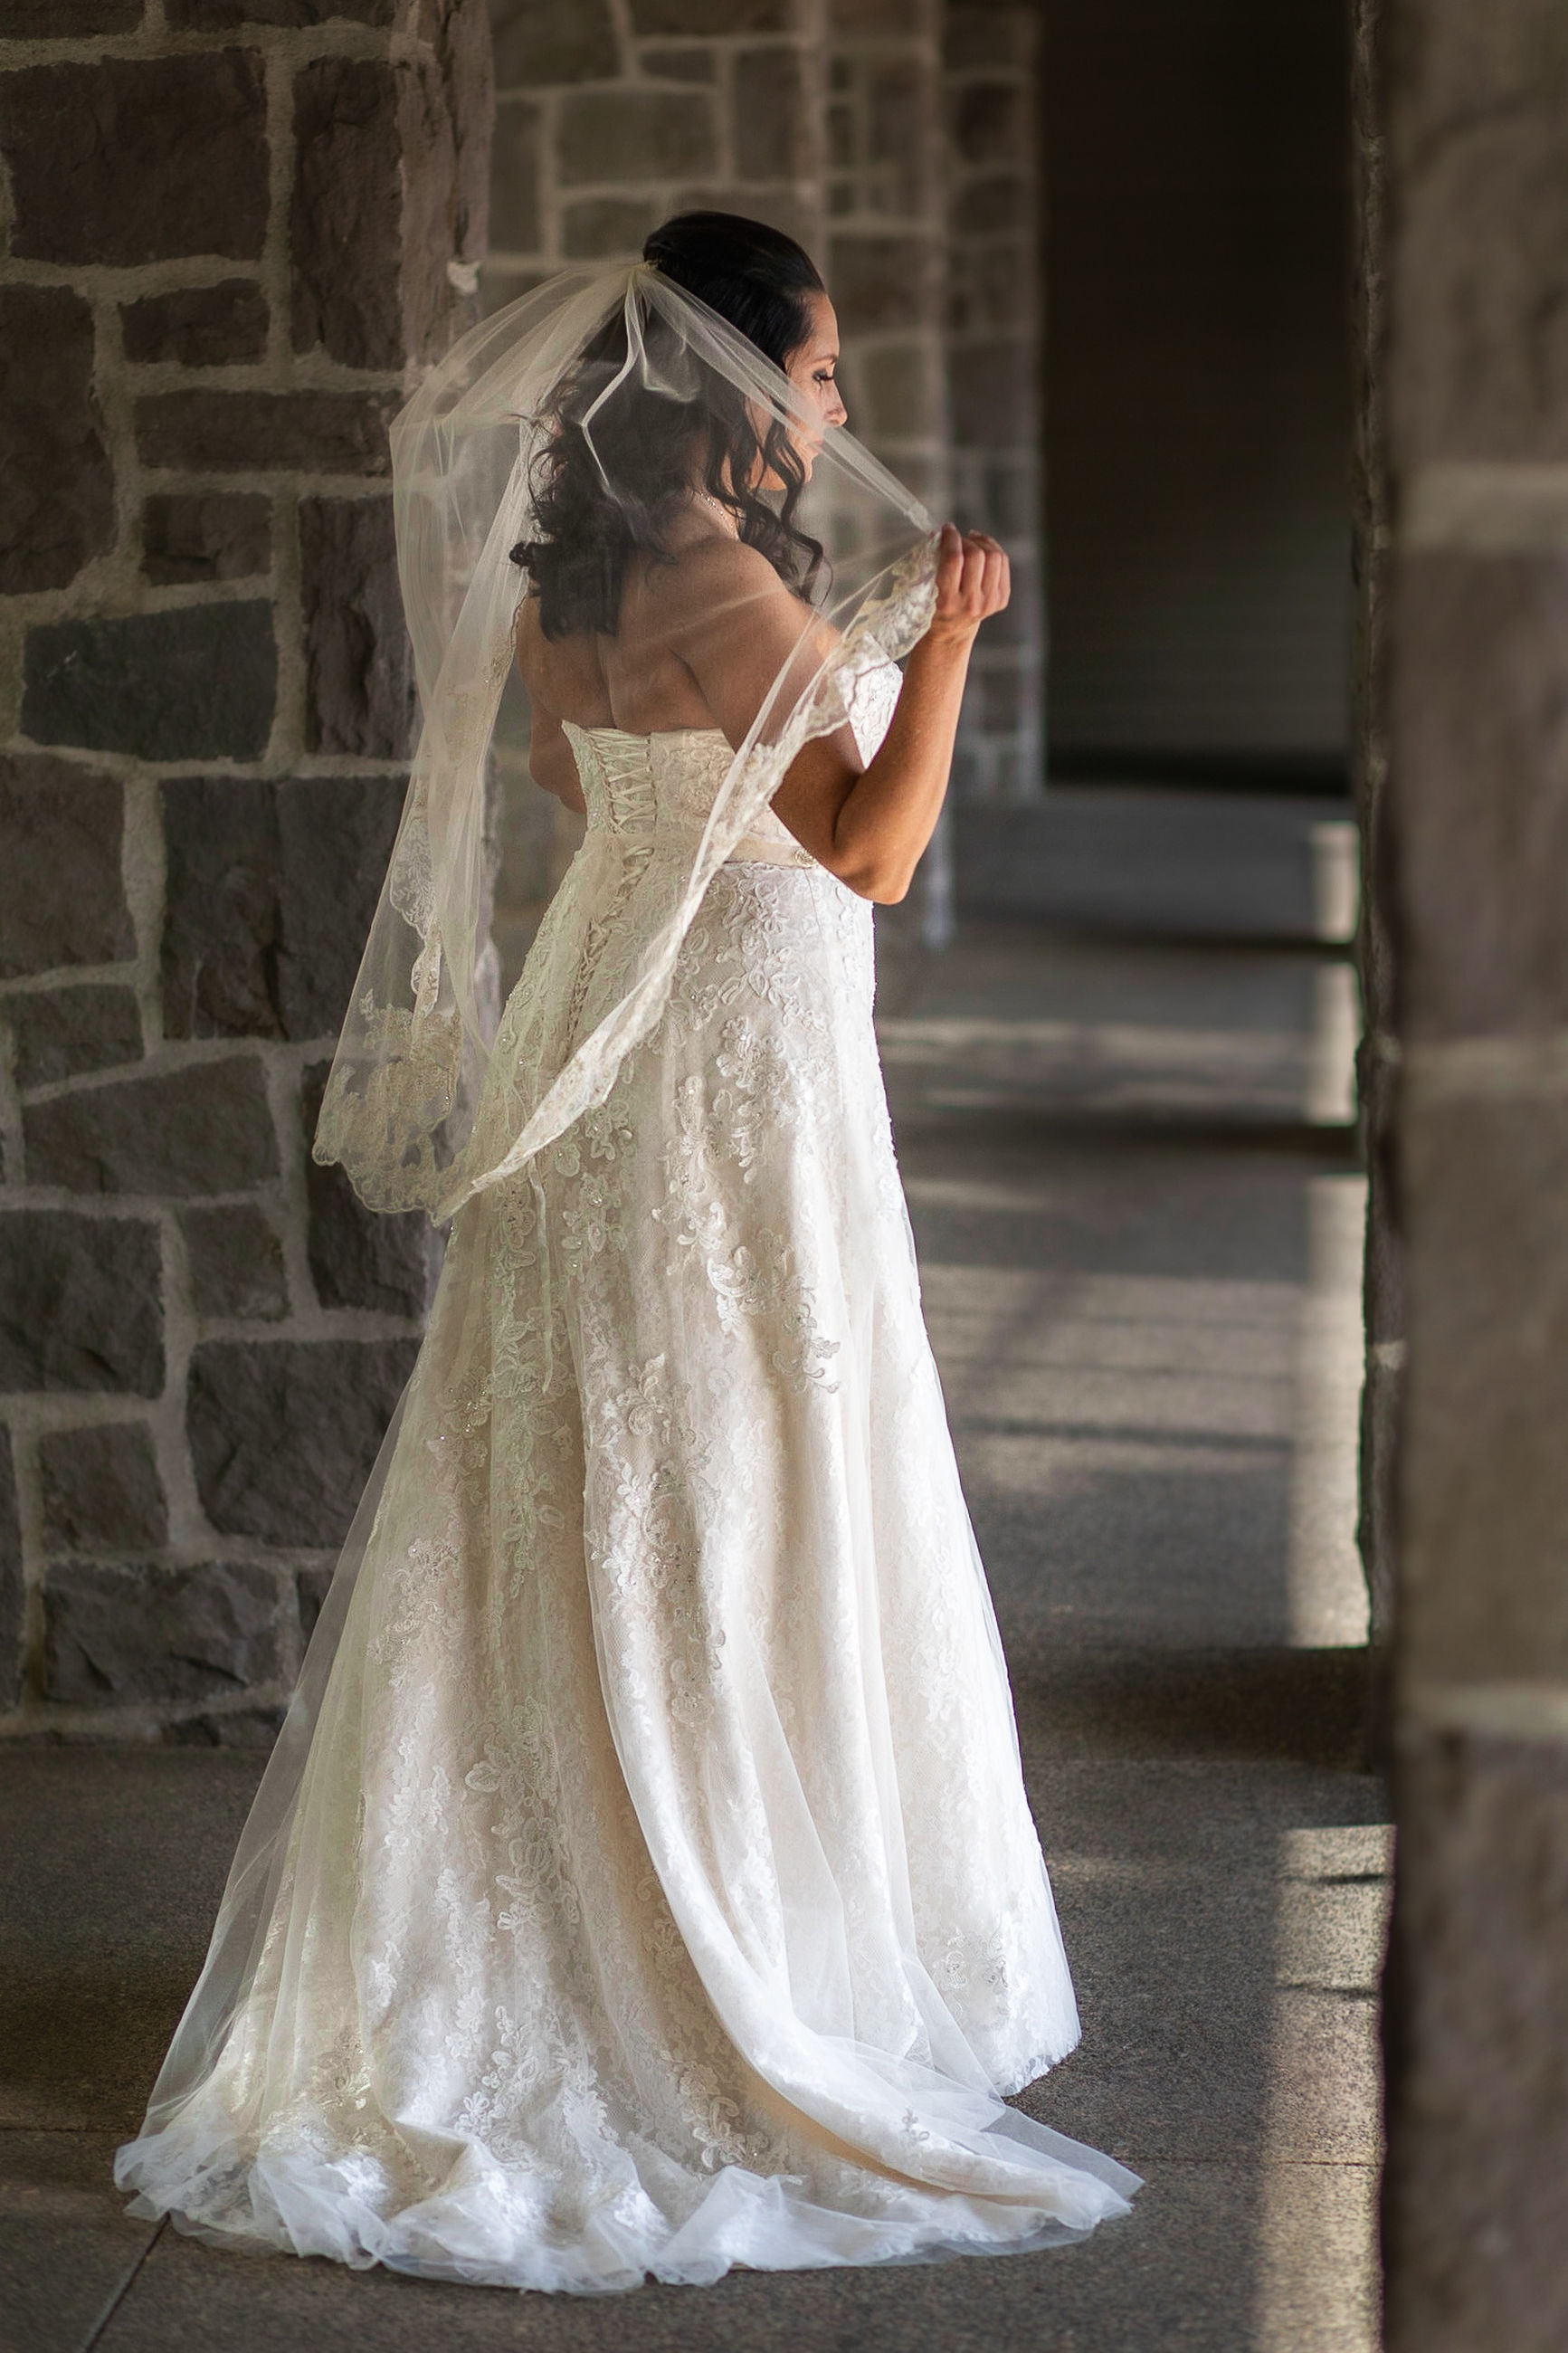 women, wedding, real people, one person, wedding dress, standing, newlywed, celebration, bride, event, full length, fashion, side view, adult, white color, lifestyles, young adult, life events, built structure, veil